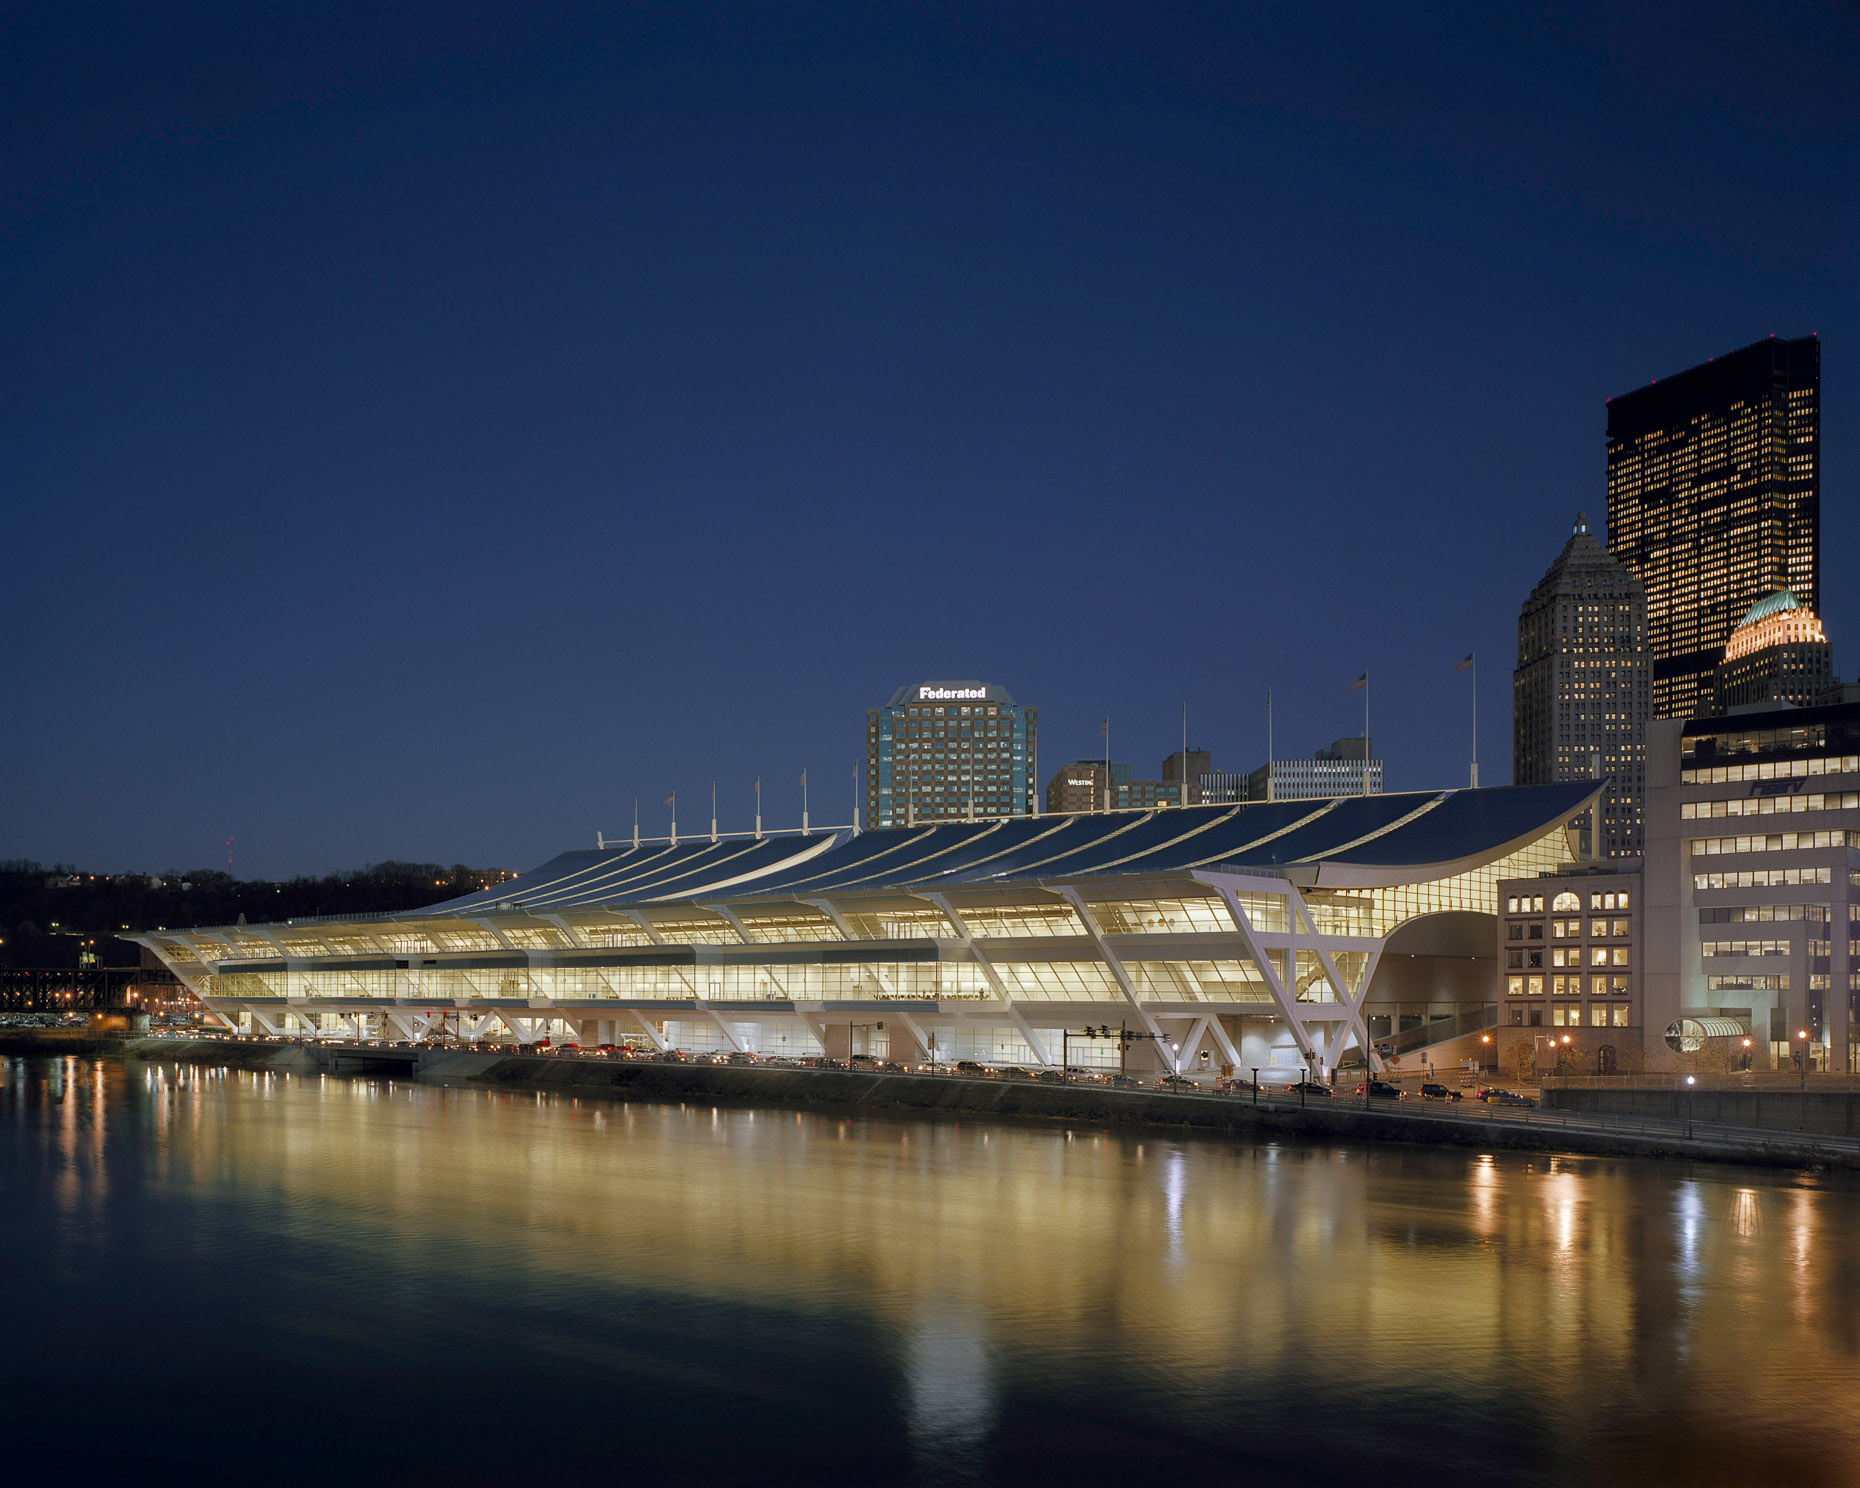 David L Lawrence Convention Center by Rafael Viñoly Architects photographed by Brad Feinknopf based in Columbus, Ohio